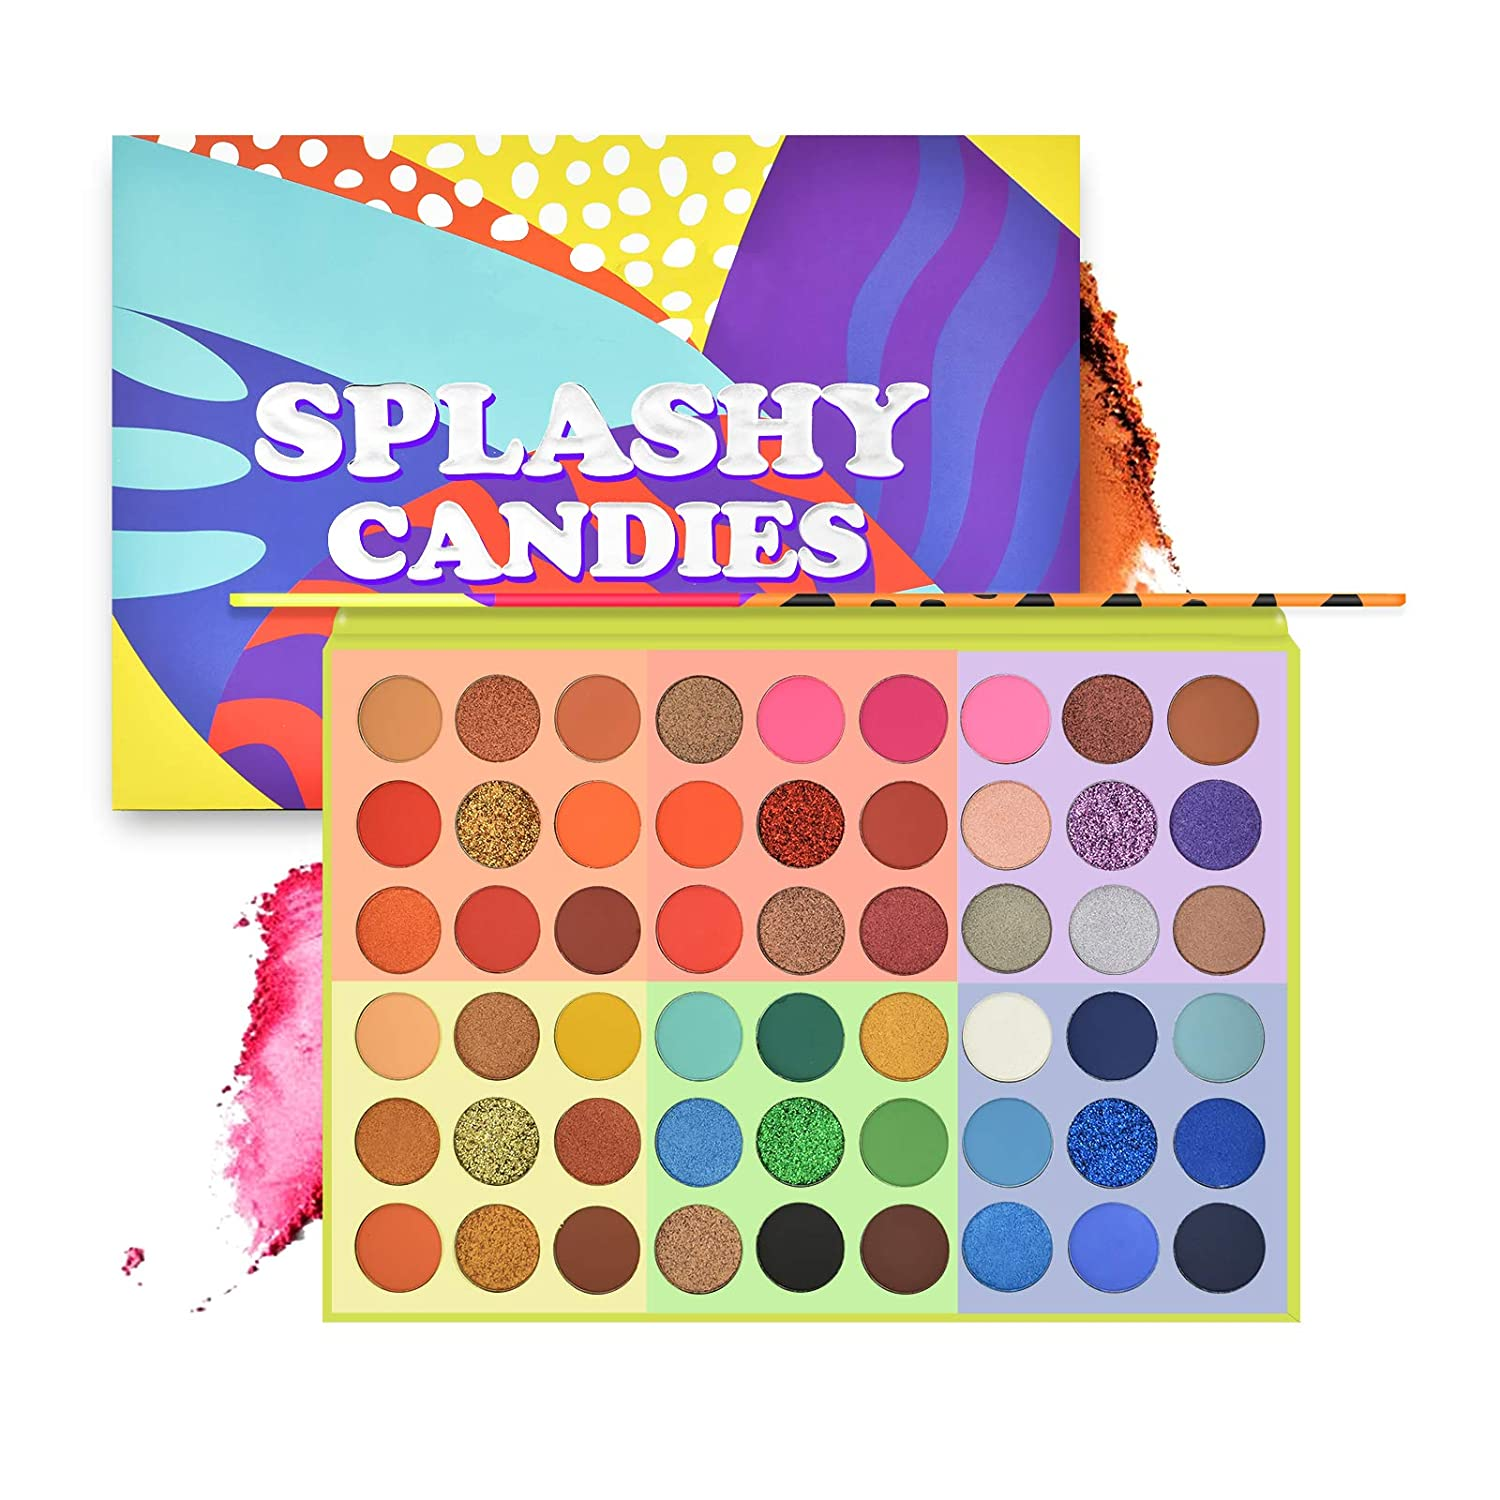 Ownest 54 Colors Eyeshadow Palette,Vibrant Candy Color Style Matte Shimmer Make Up Eyeshadow Powder Colorful Eyeshadow Powder Glitter Bright Eyeshadow Makeup Waterproof Long Lasting Makeup Pallet